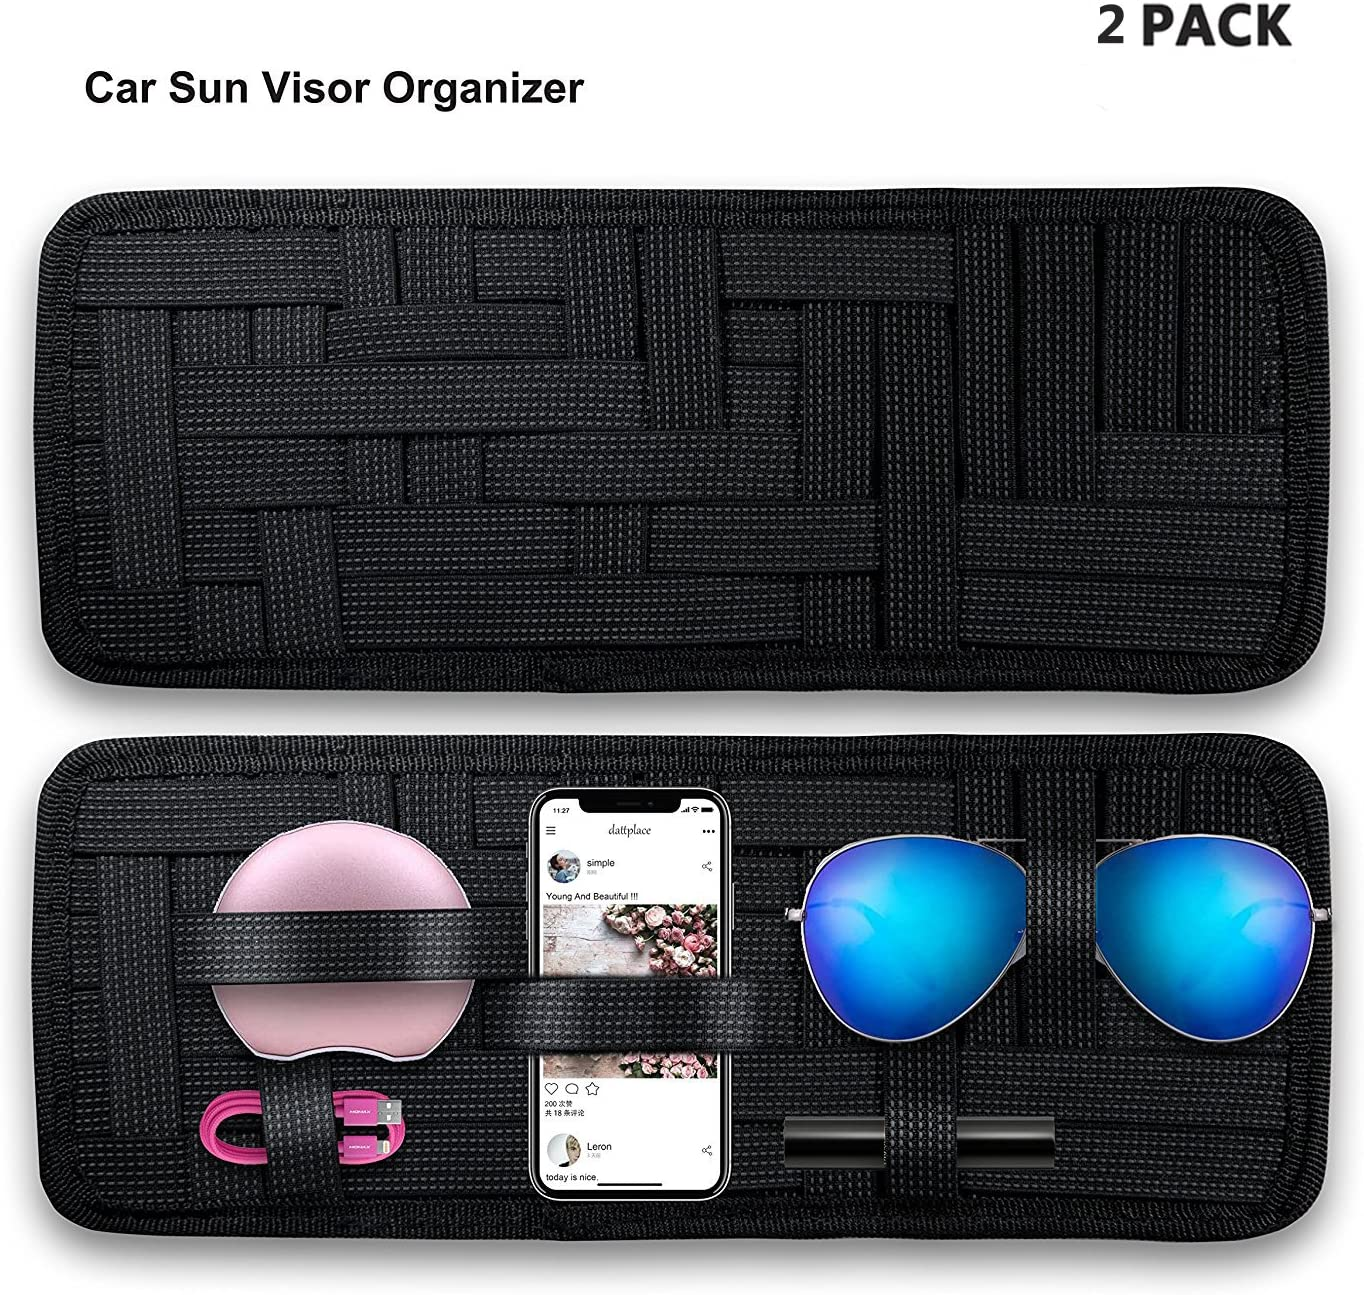 SourceTon 2 Packs Car Sun Visor Organizer Car Visor Storage Anti-Slip Elastic Woven Board for Sunglass Holder Parking Fuel Card Digital Accessories